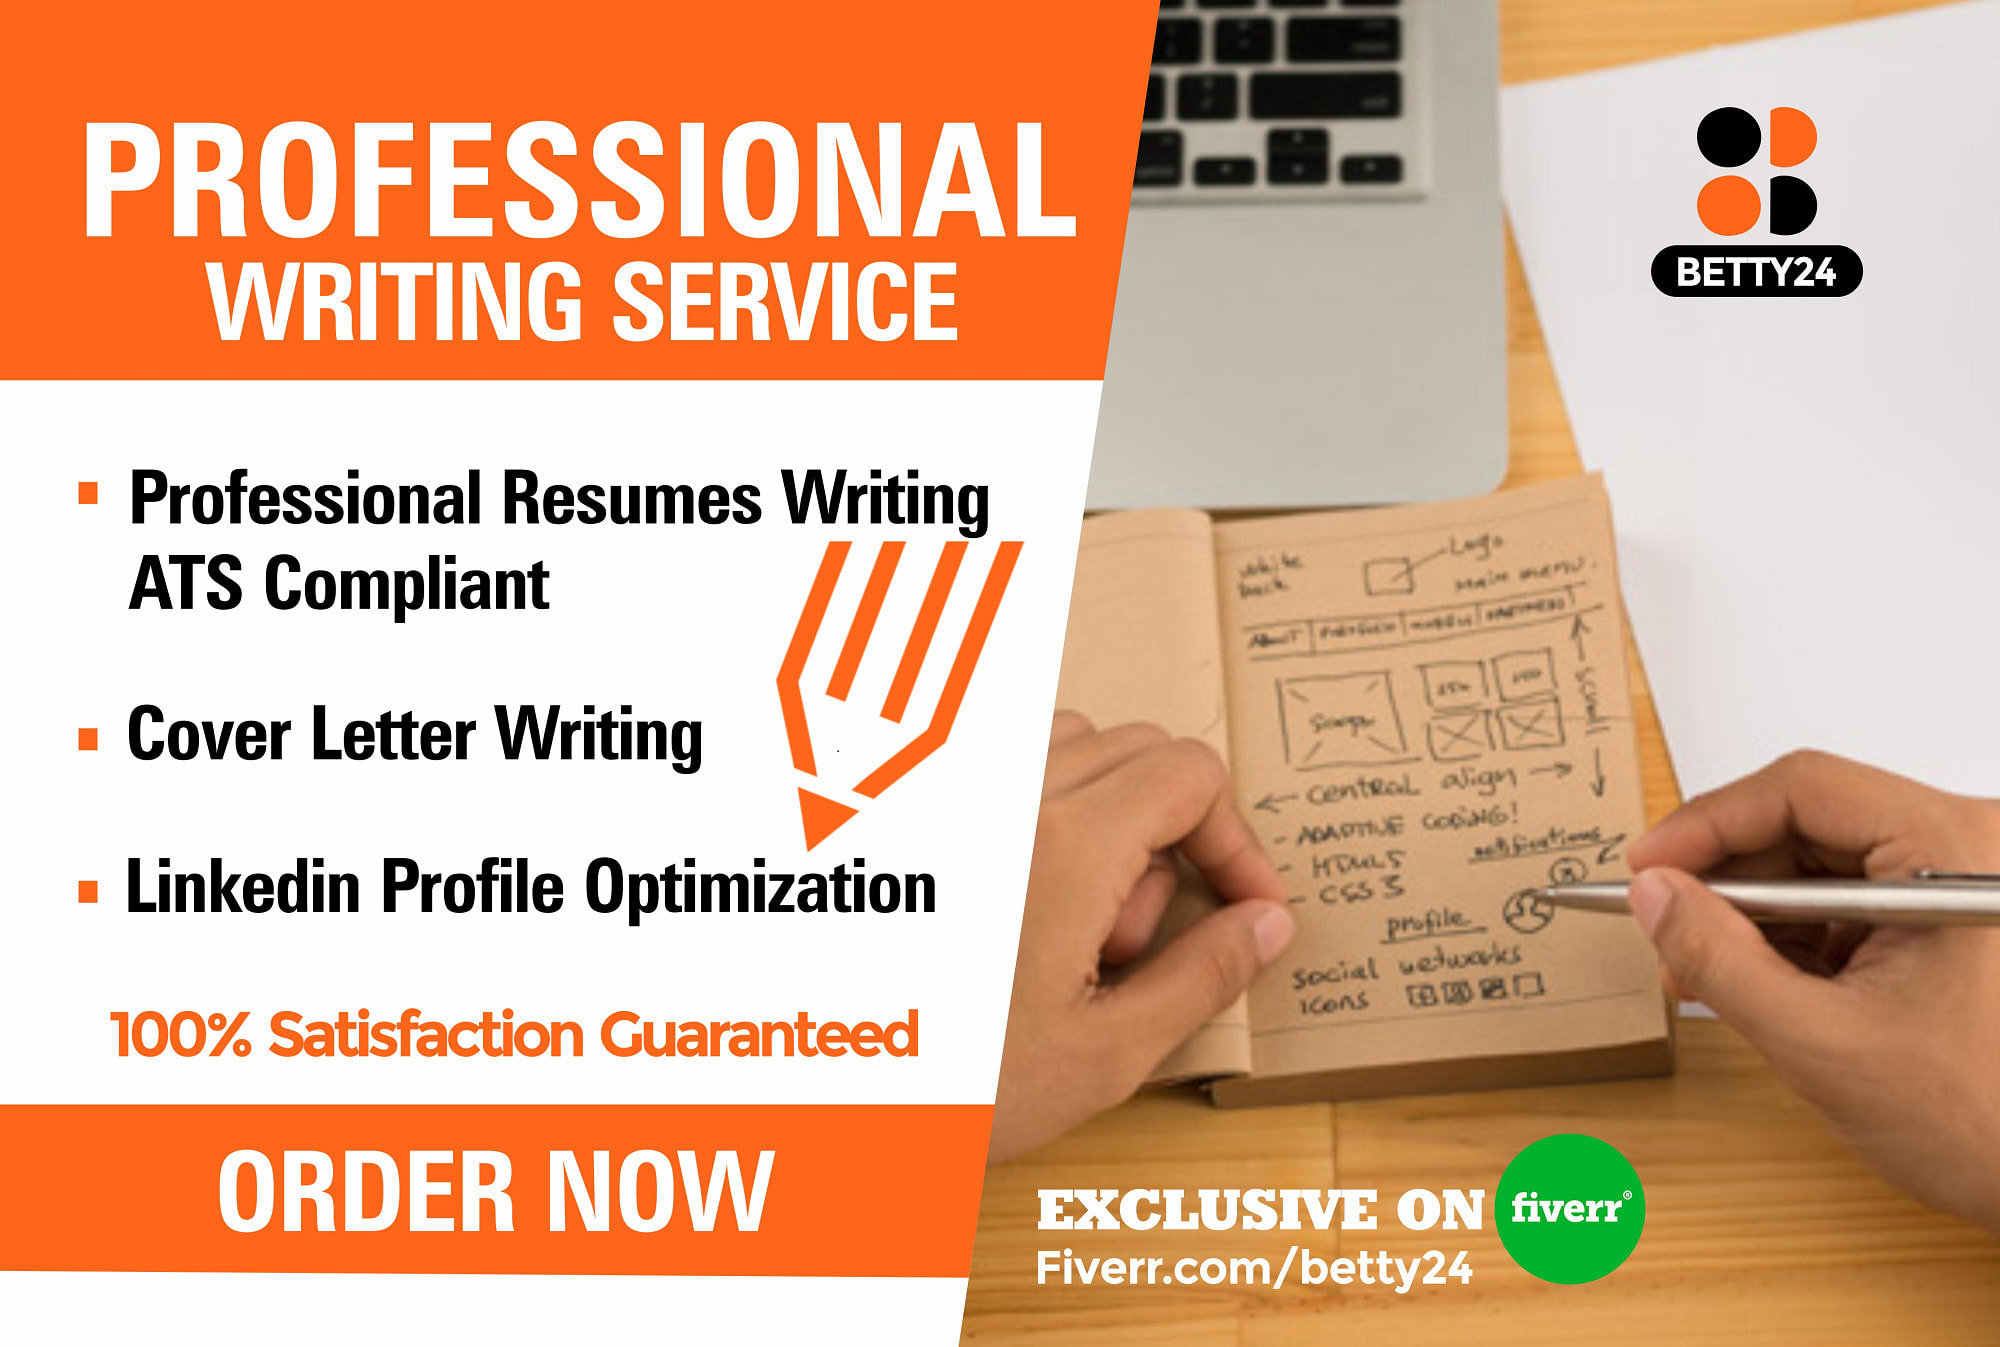 write and design professional resume and cover letters